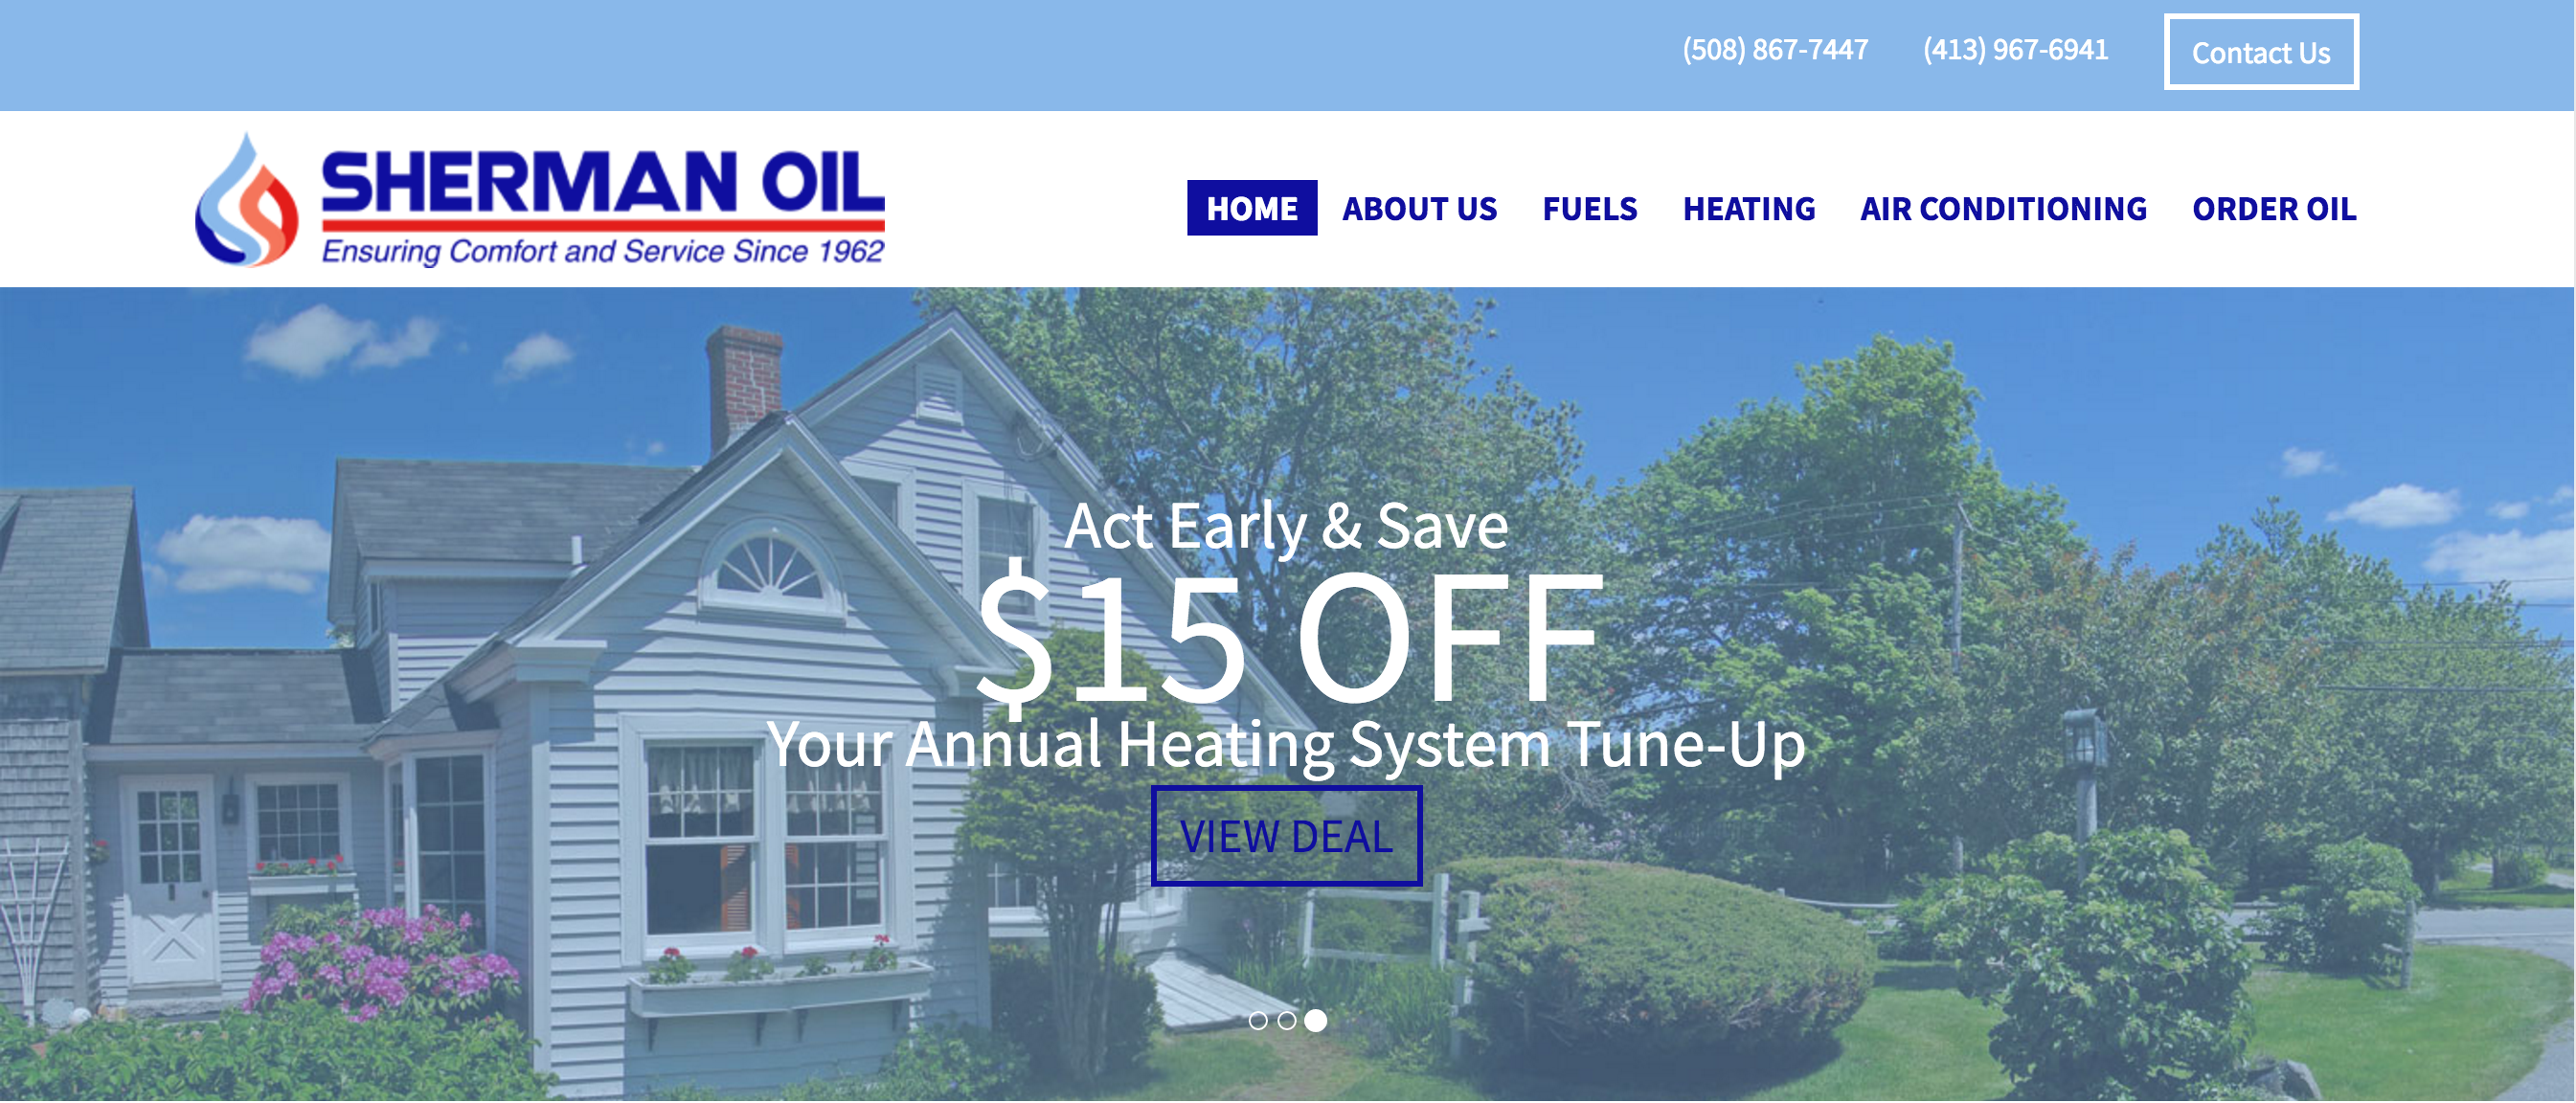 Fuel Delivery and HVAC Services in Central MA